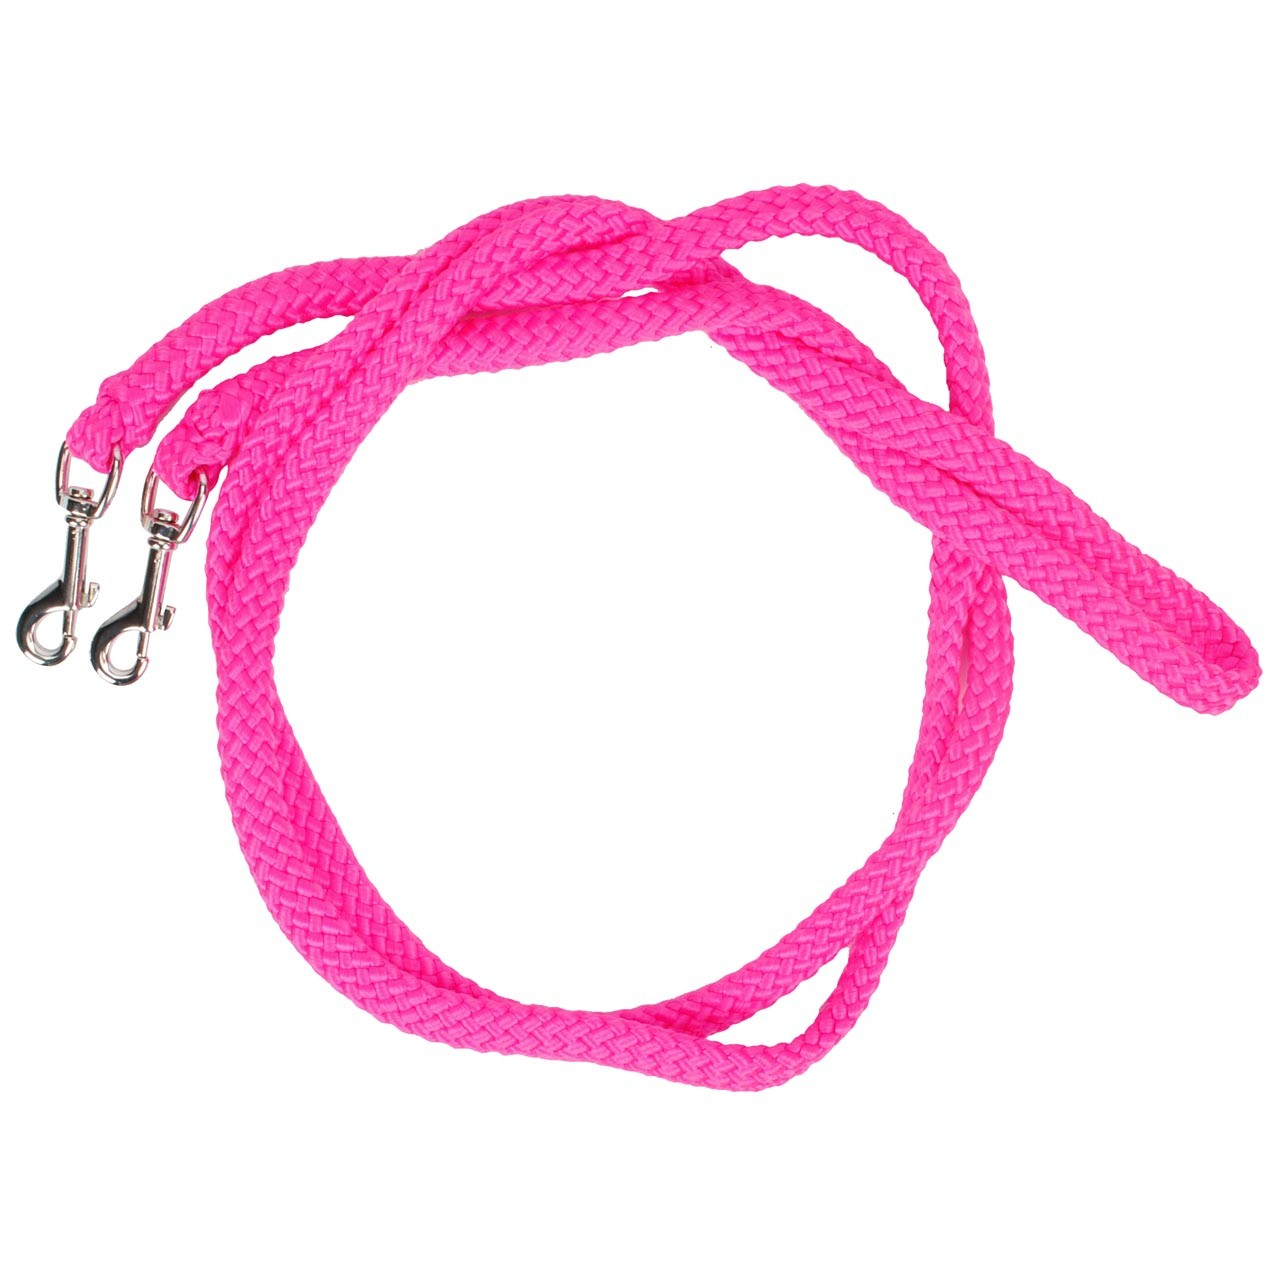 Horse Charms touwteugels fuchsia maat:l